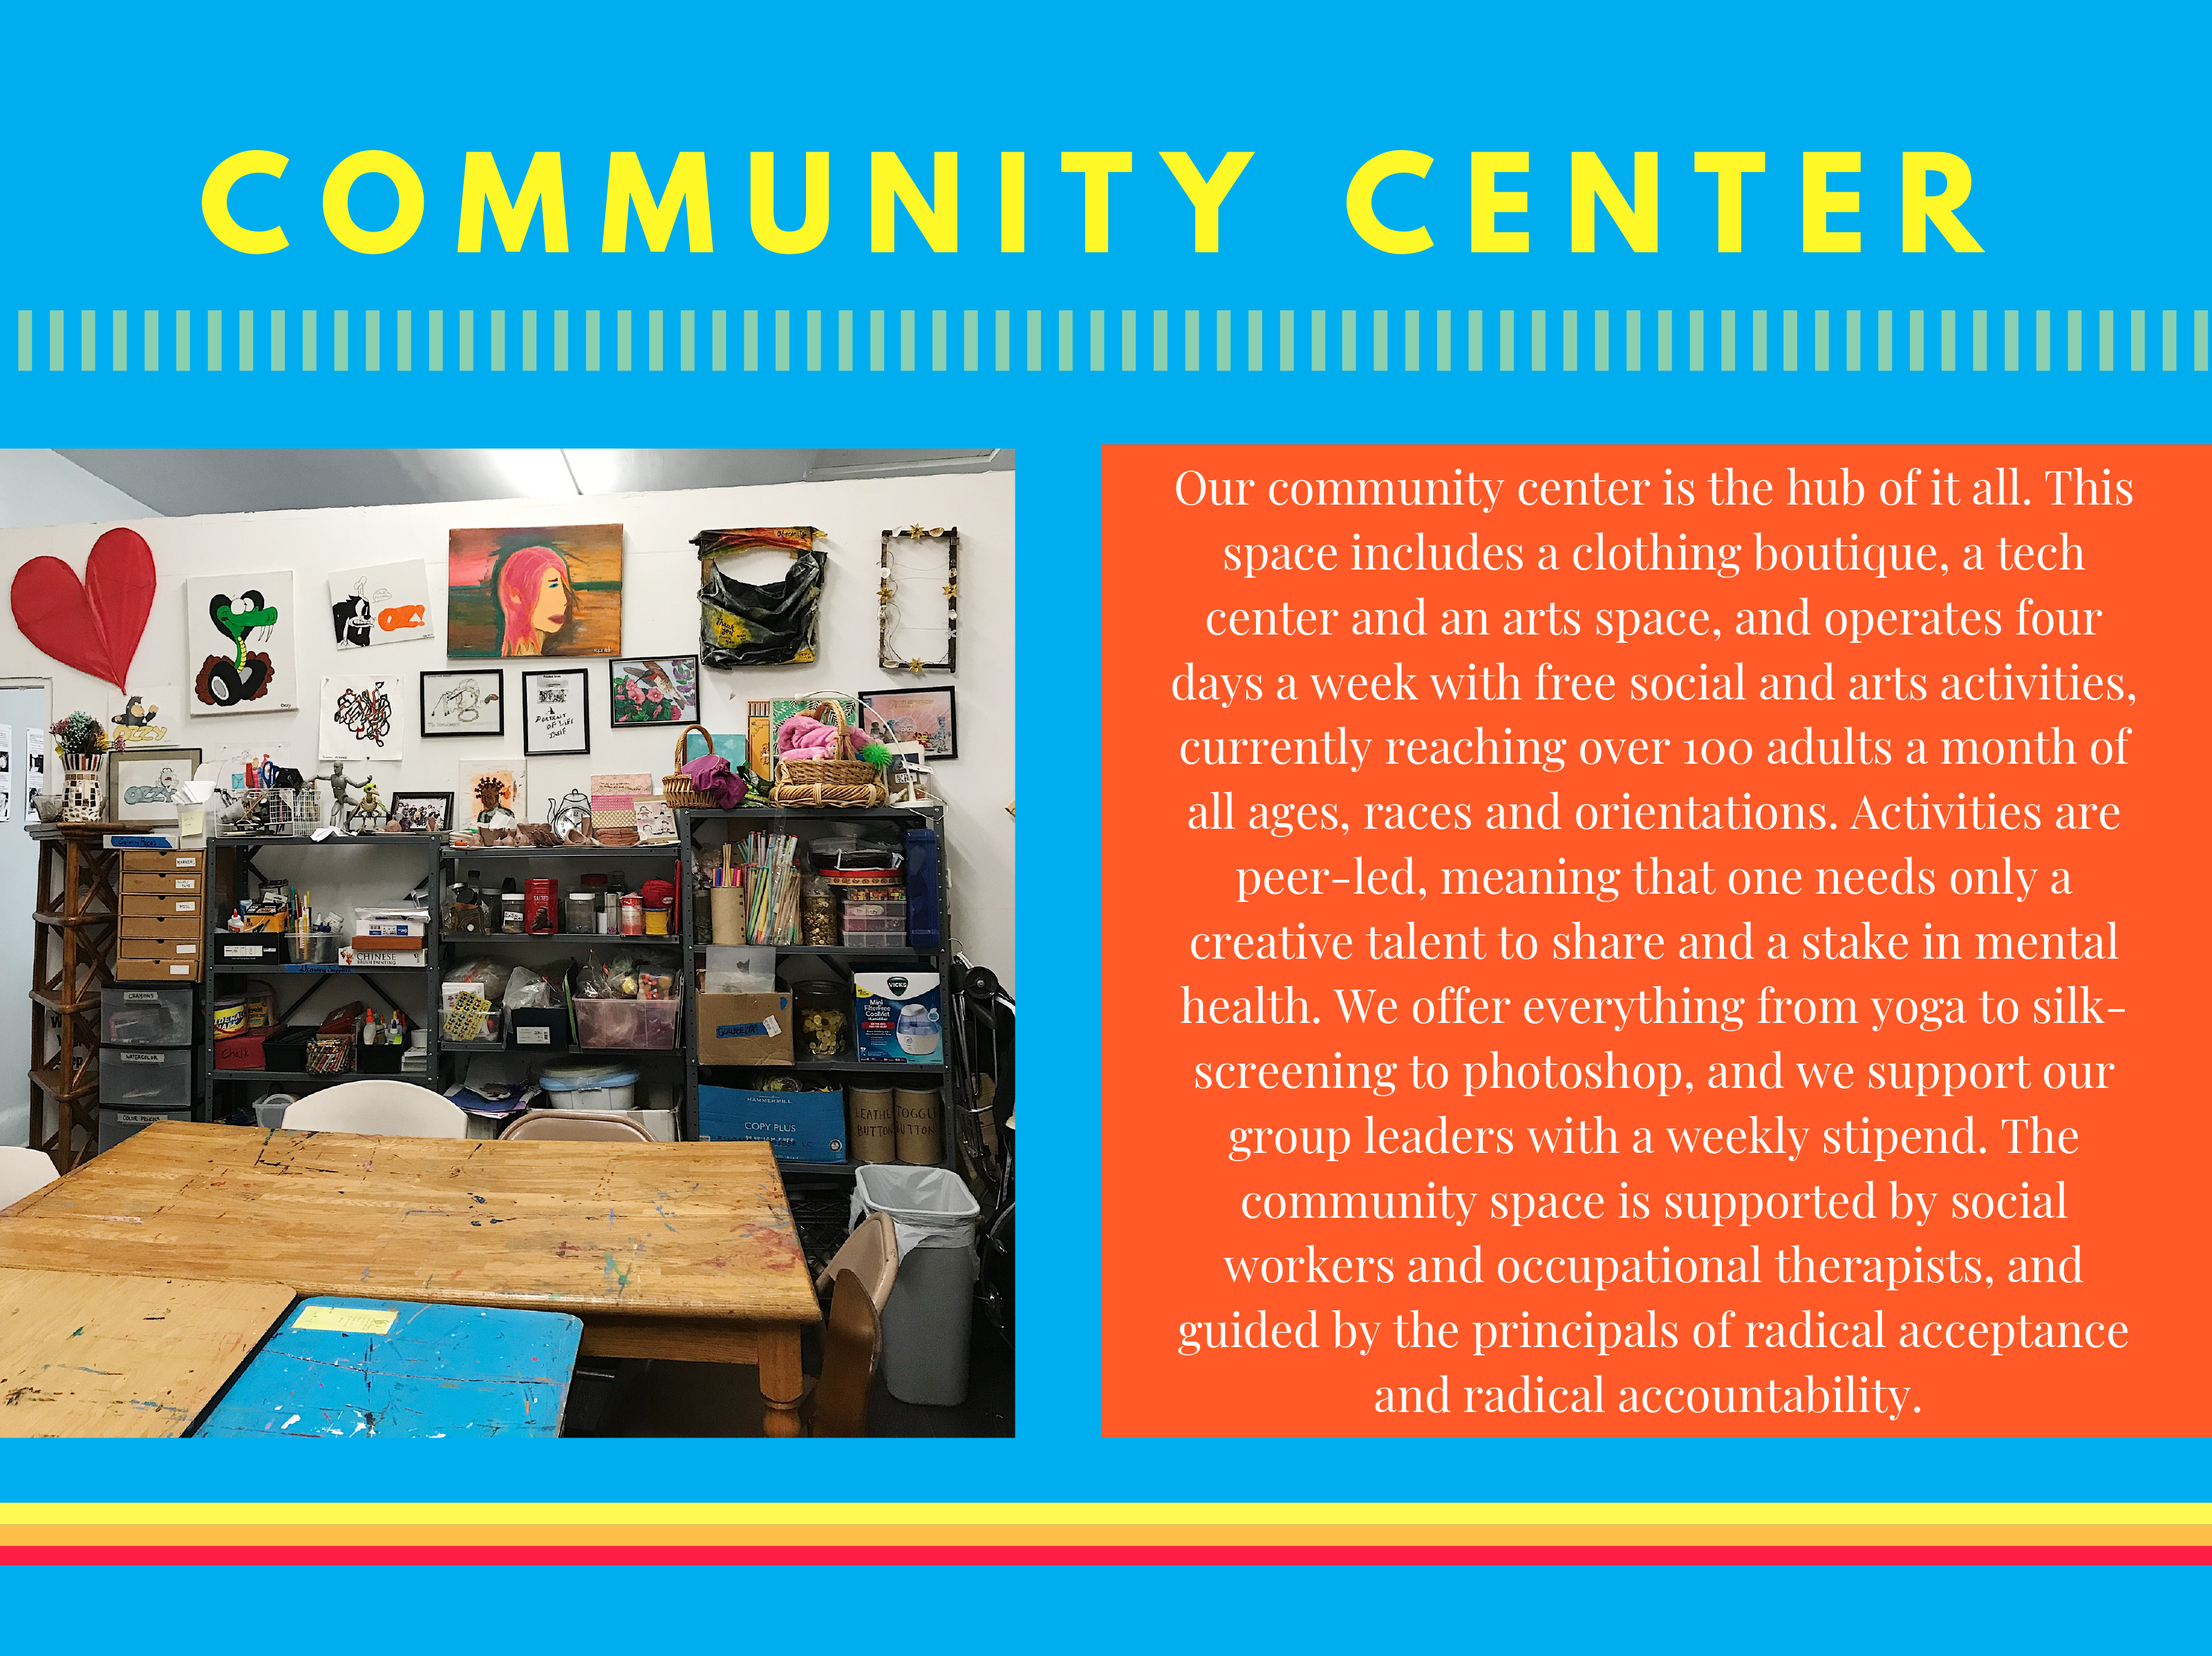 From the pitch deck: the community center